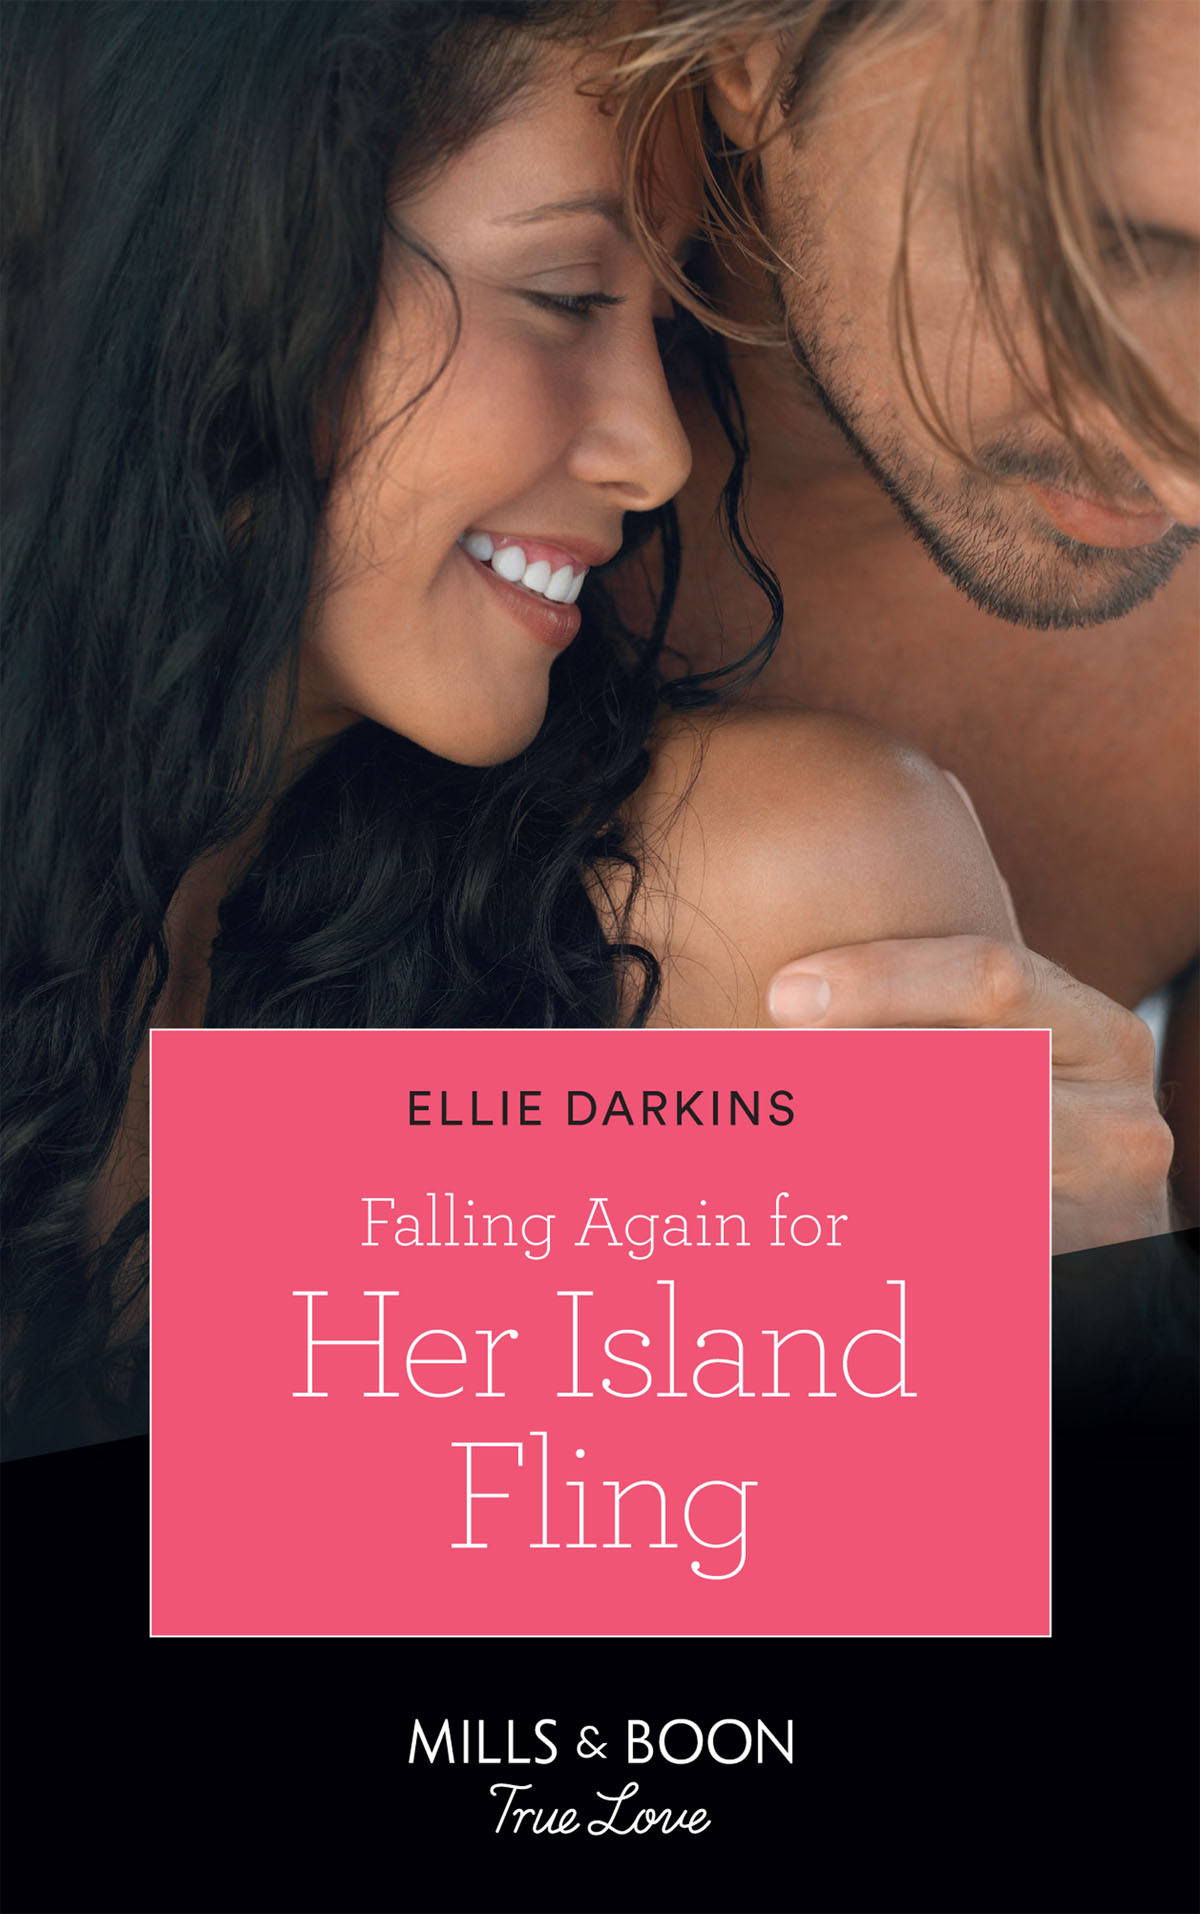 Ellie Darkins Falling Again For Her Island Fling